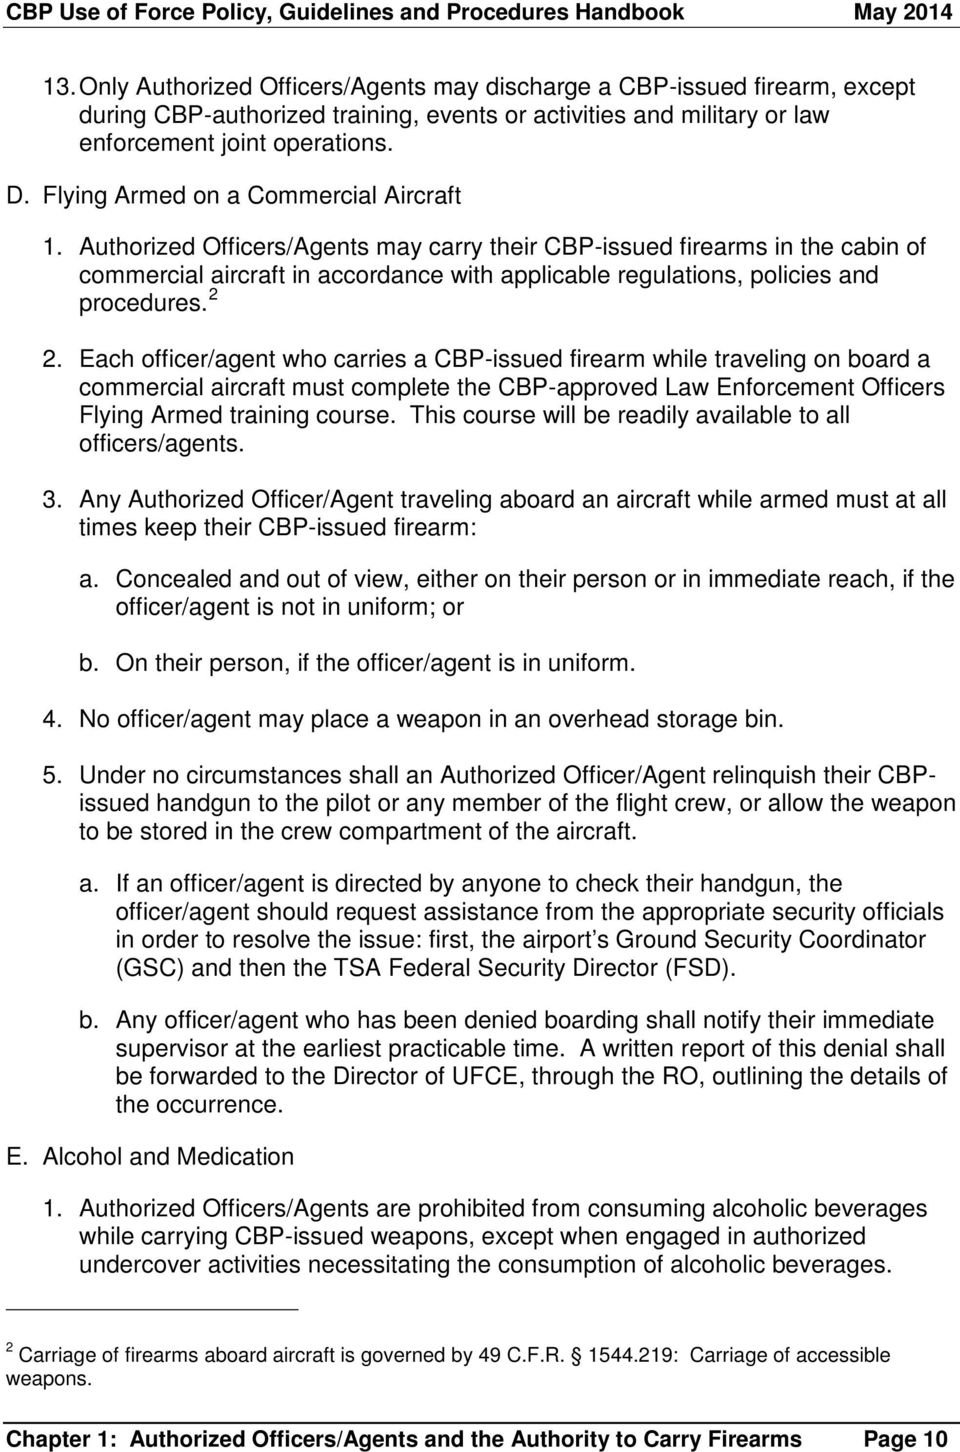 Authorized Officers/Agents may carry their CBP-issued firearms in the cabin of commercial aircraft in accordance with applicable regulations, policies and procedures. 2 2.